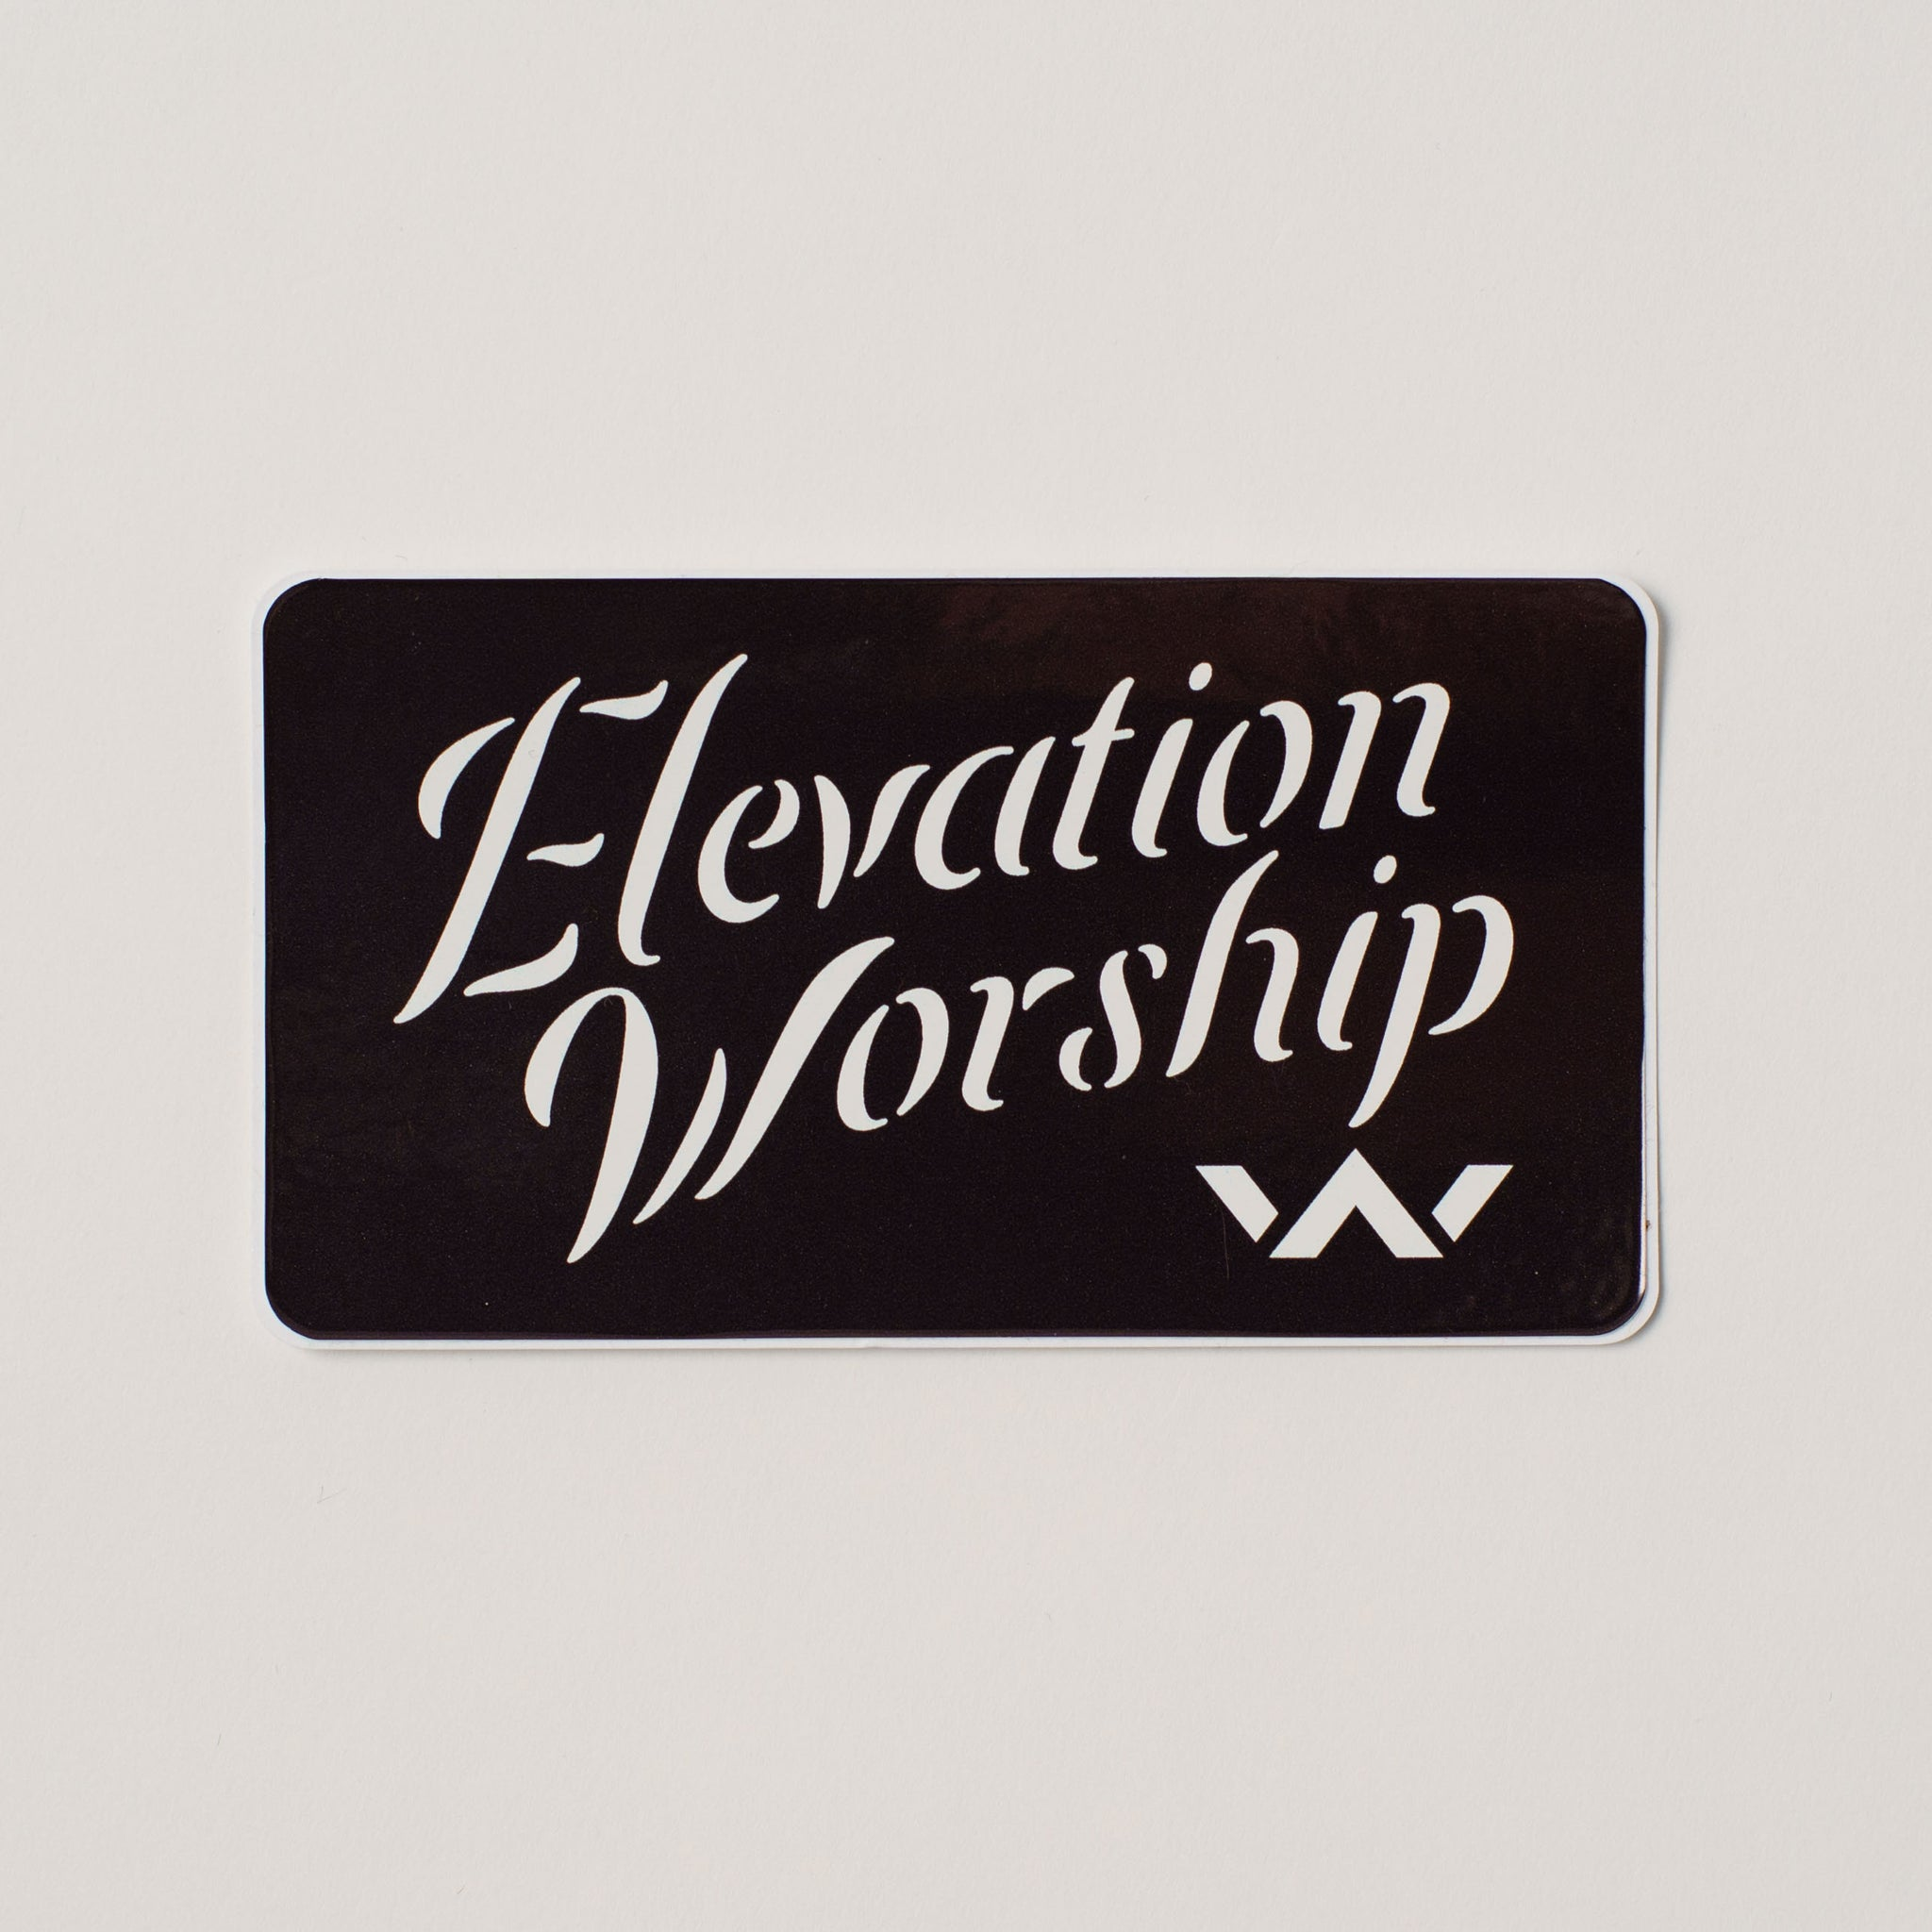 Elevation Worship Sticker Pack